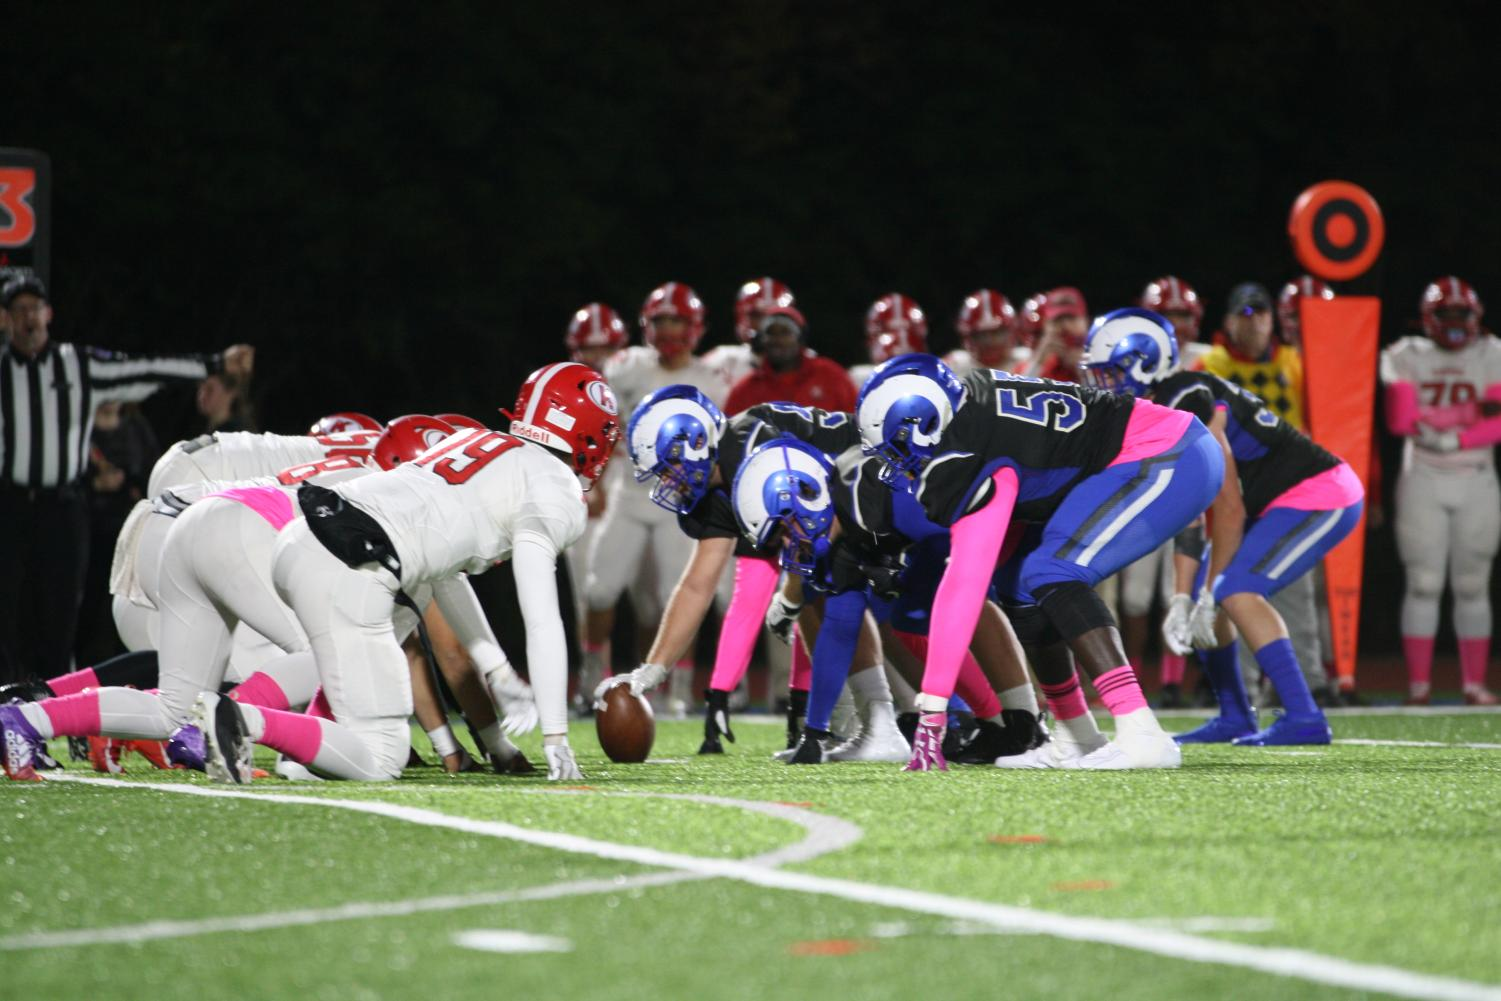 The Kirkwood defense squares off against the Ladue offensive line.